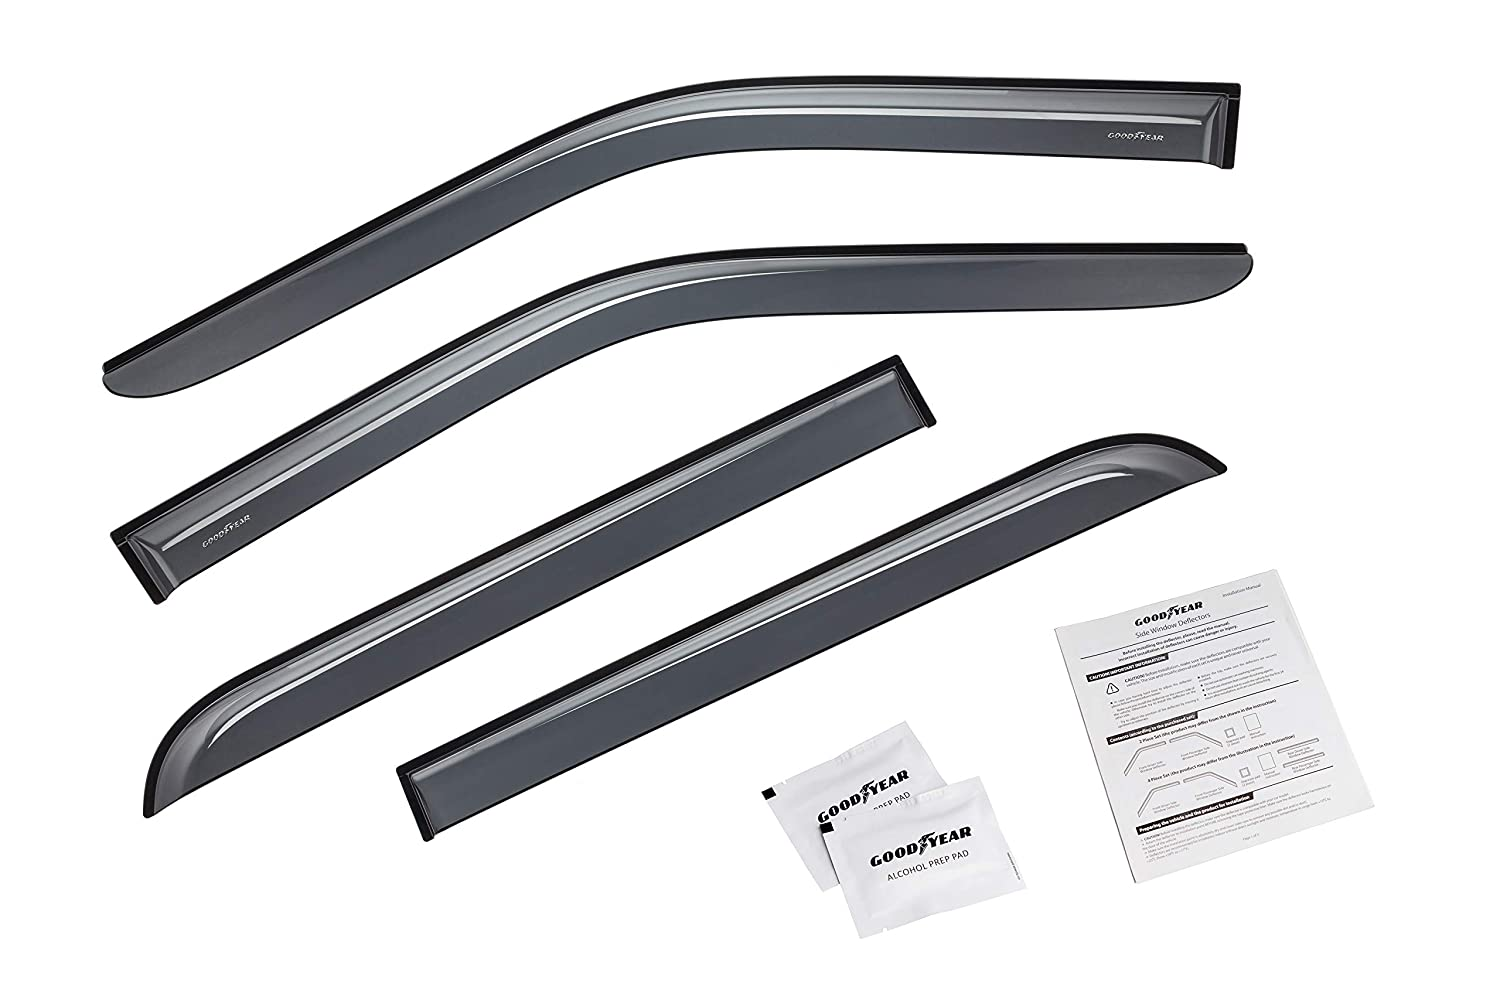 Window Visors 4 Pieces Tape-on Rain Guards GY003112 Goodyear Shatterproof Side Window Deflectors for Trucks Ford F-150 2015-2019 SuperCrew Cab